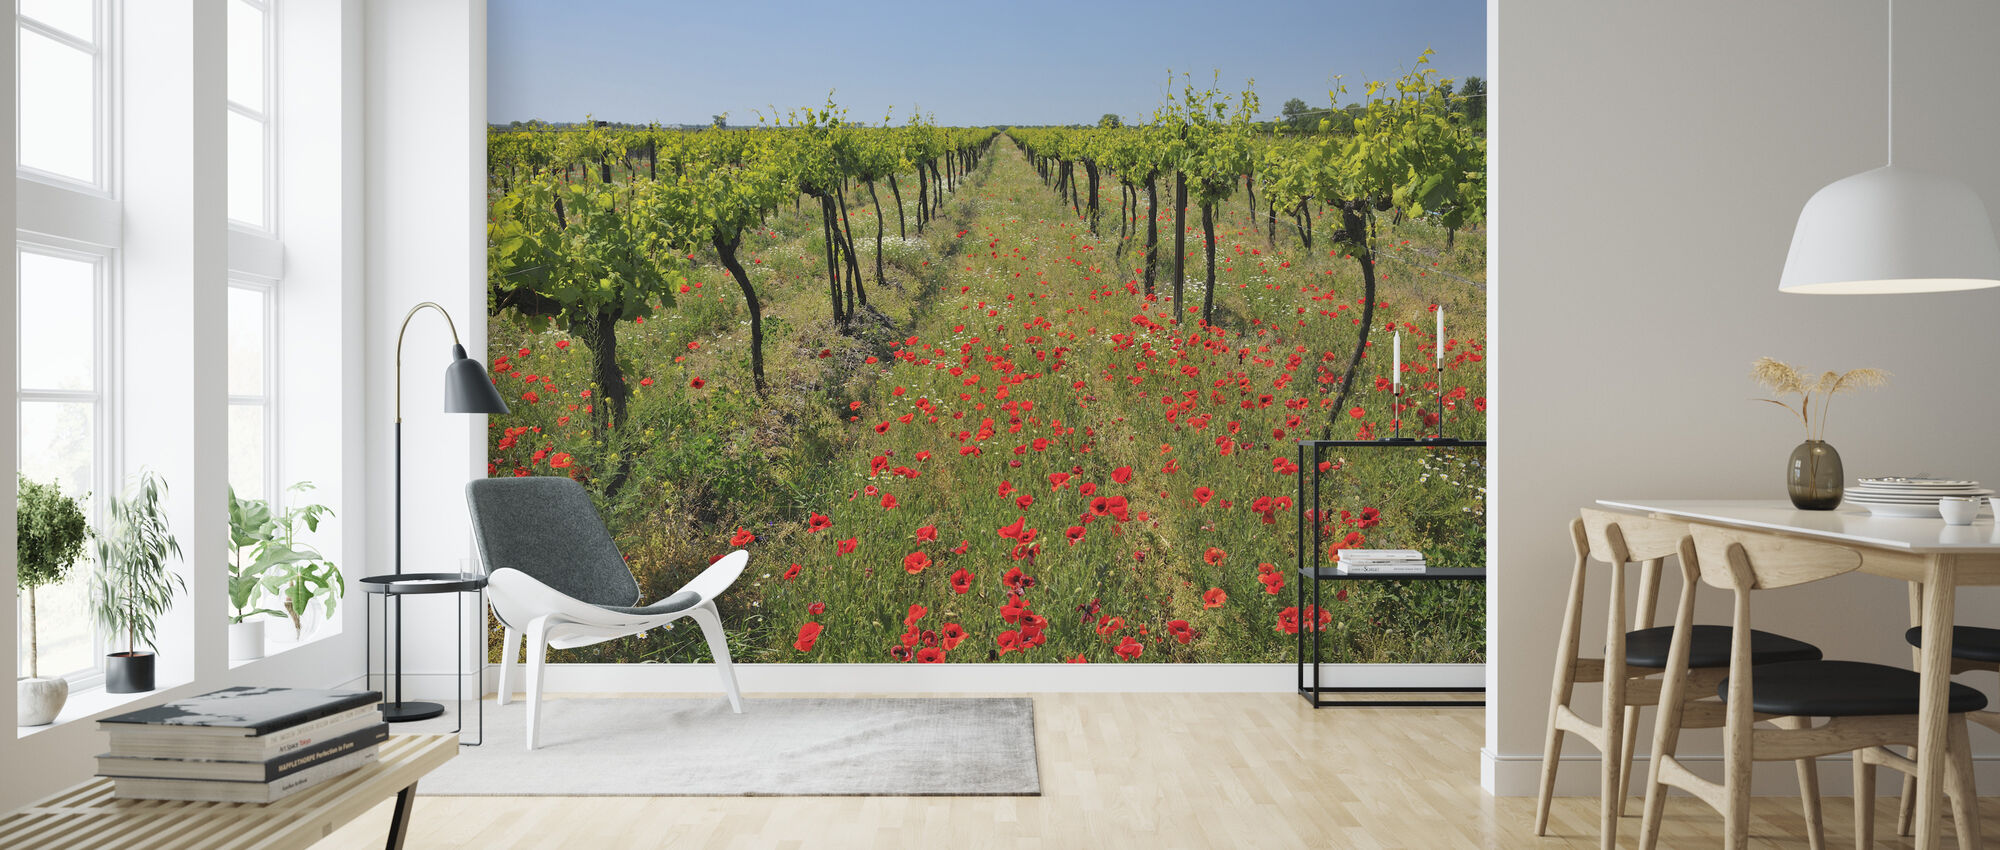 Poppies in the Vineyard - Wallpaper - Living Room